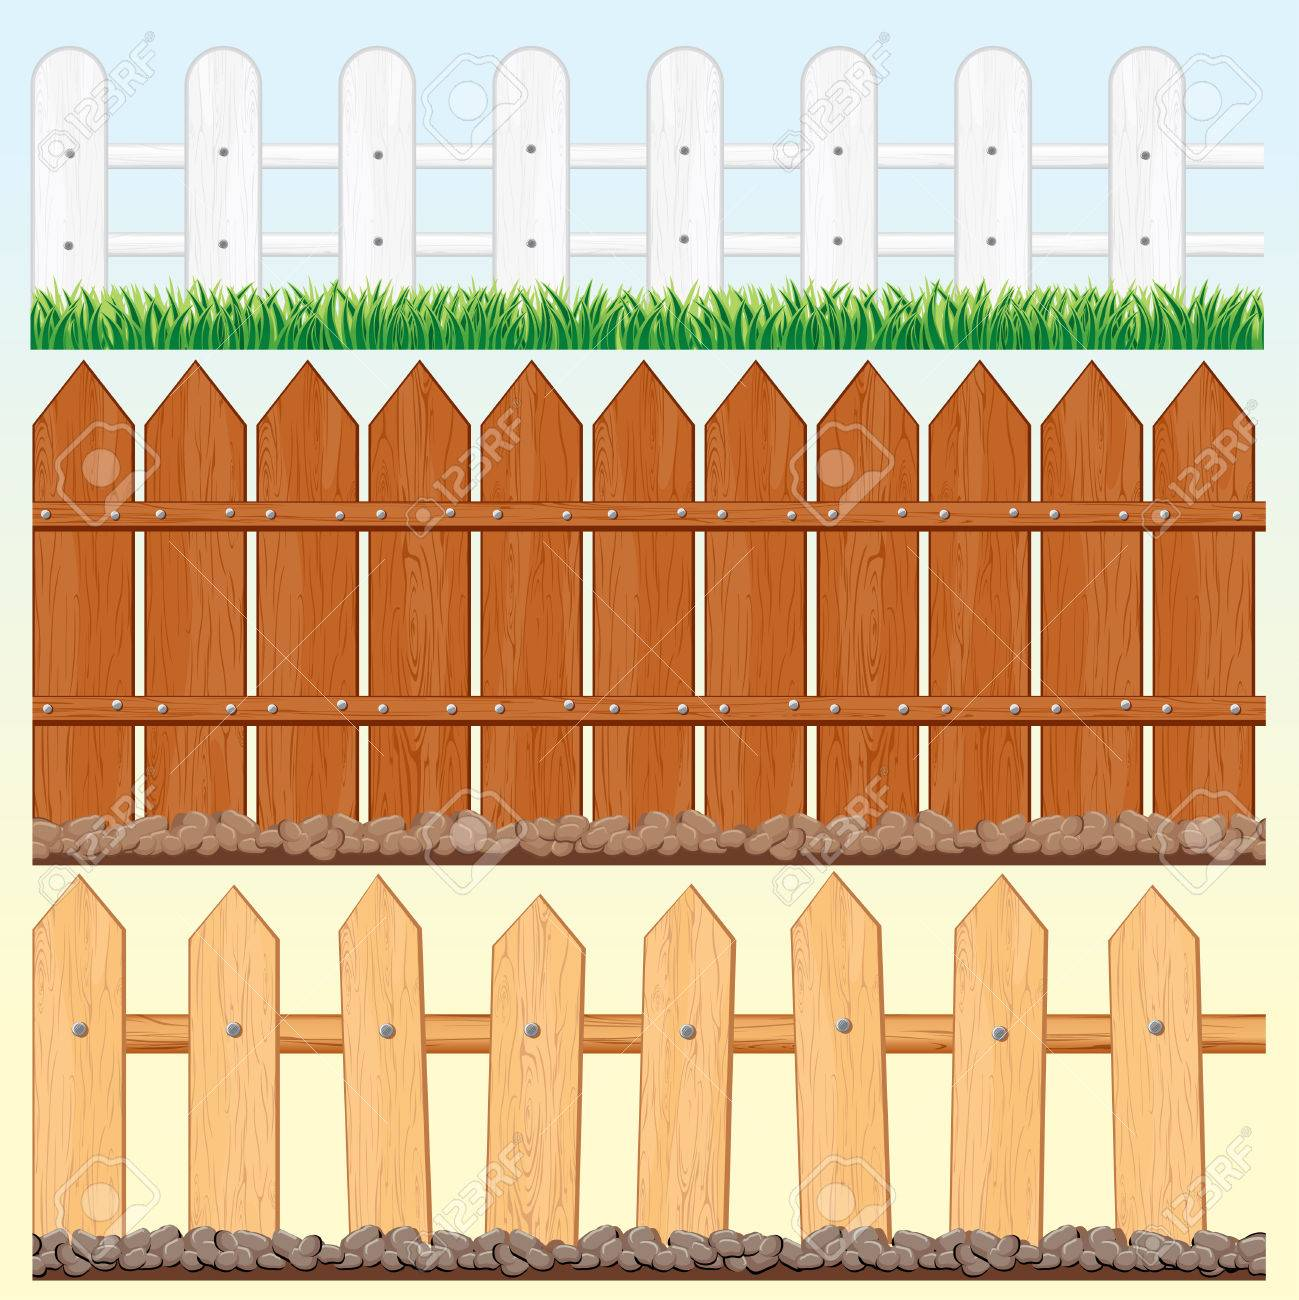 Set of Seamless Wooden Fences and palisades Stock Vector - 9060760